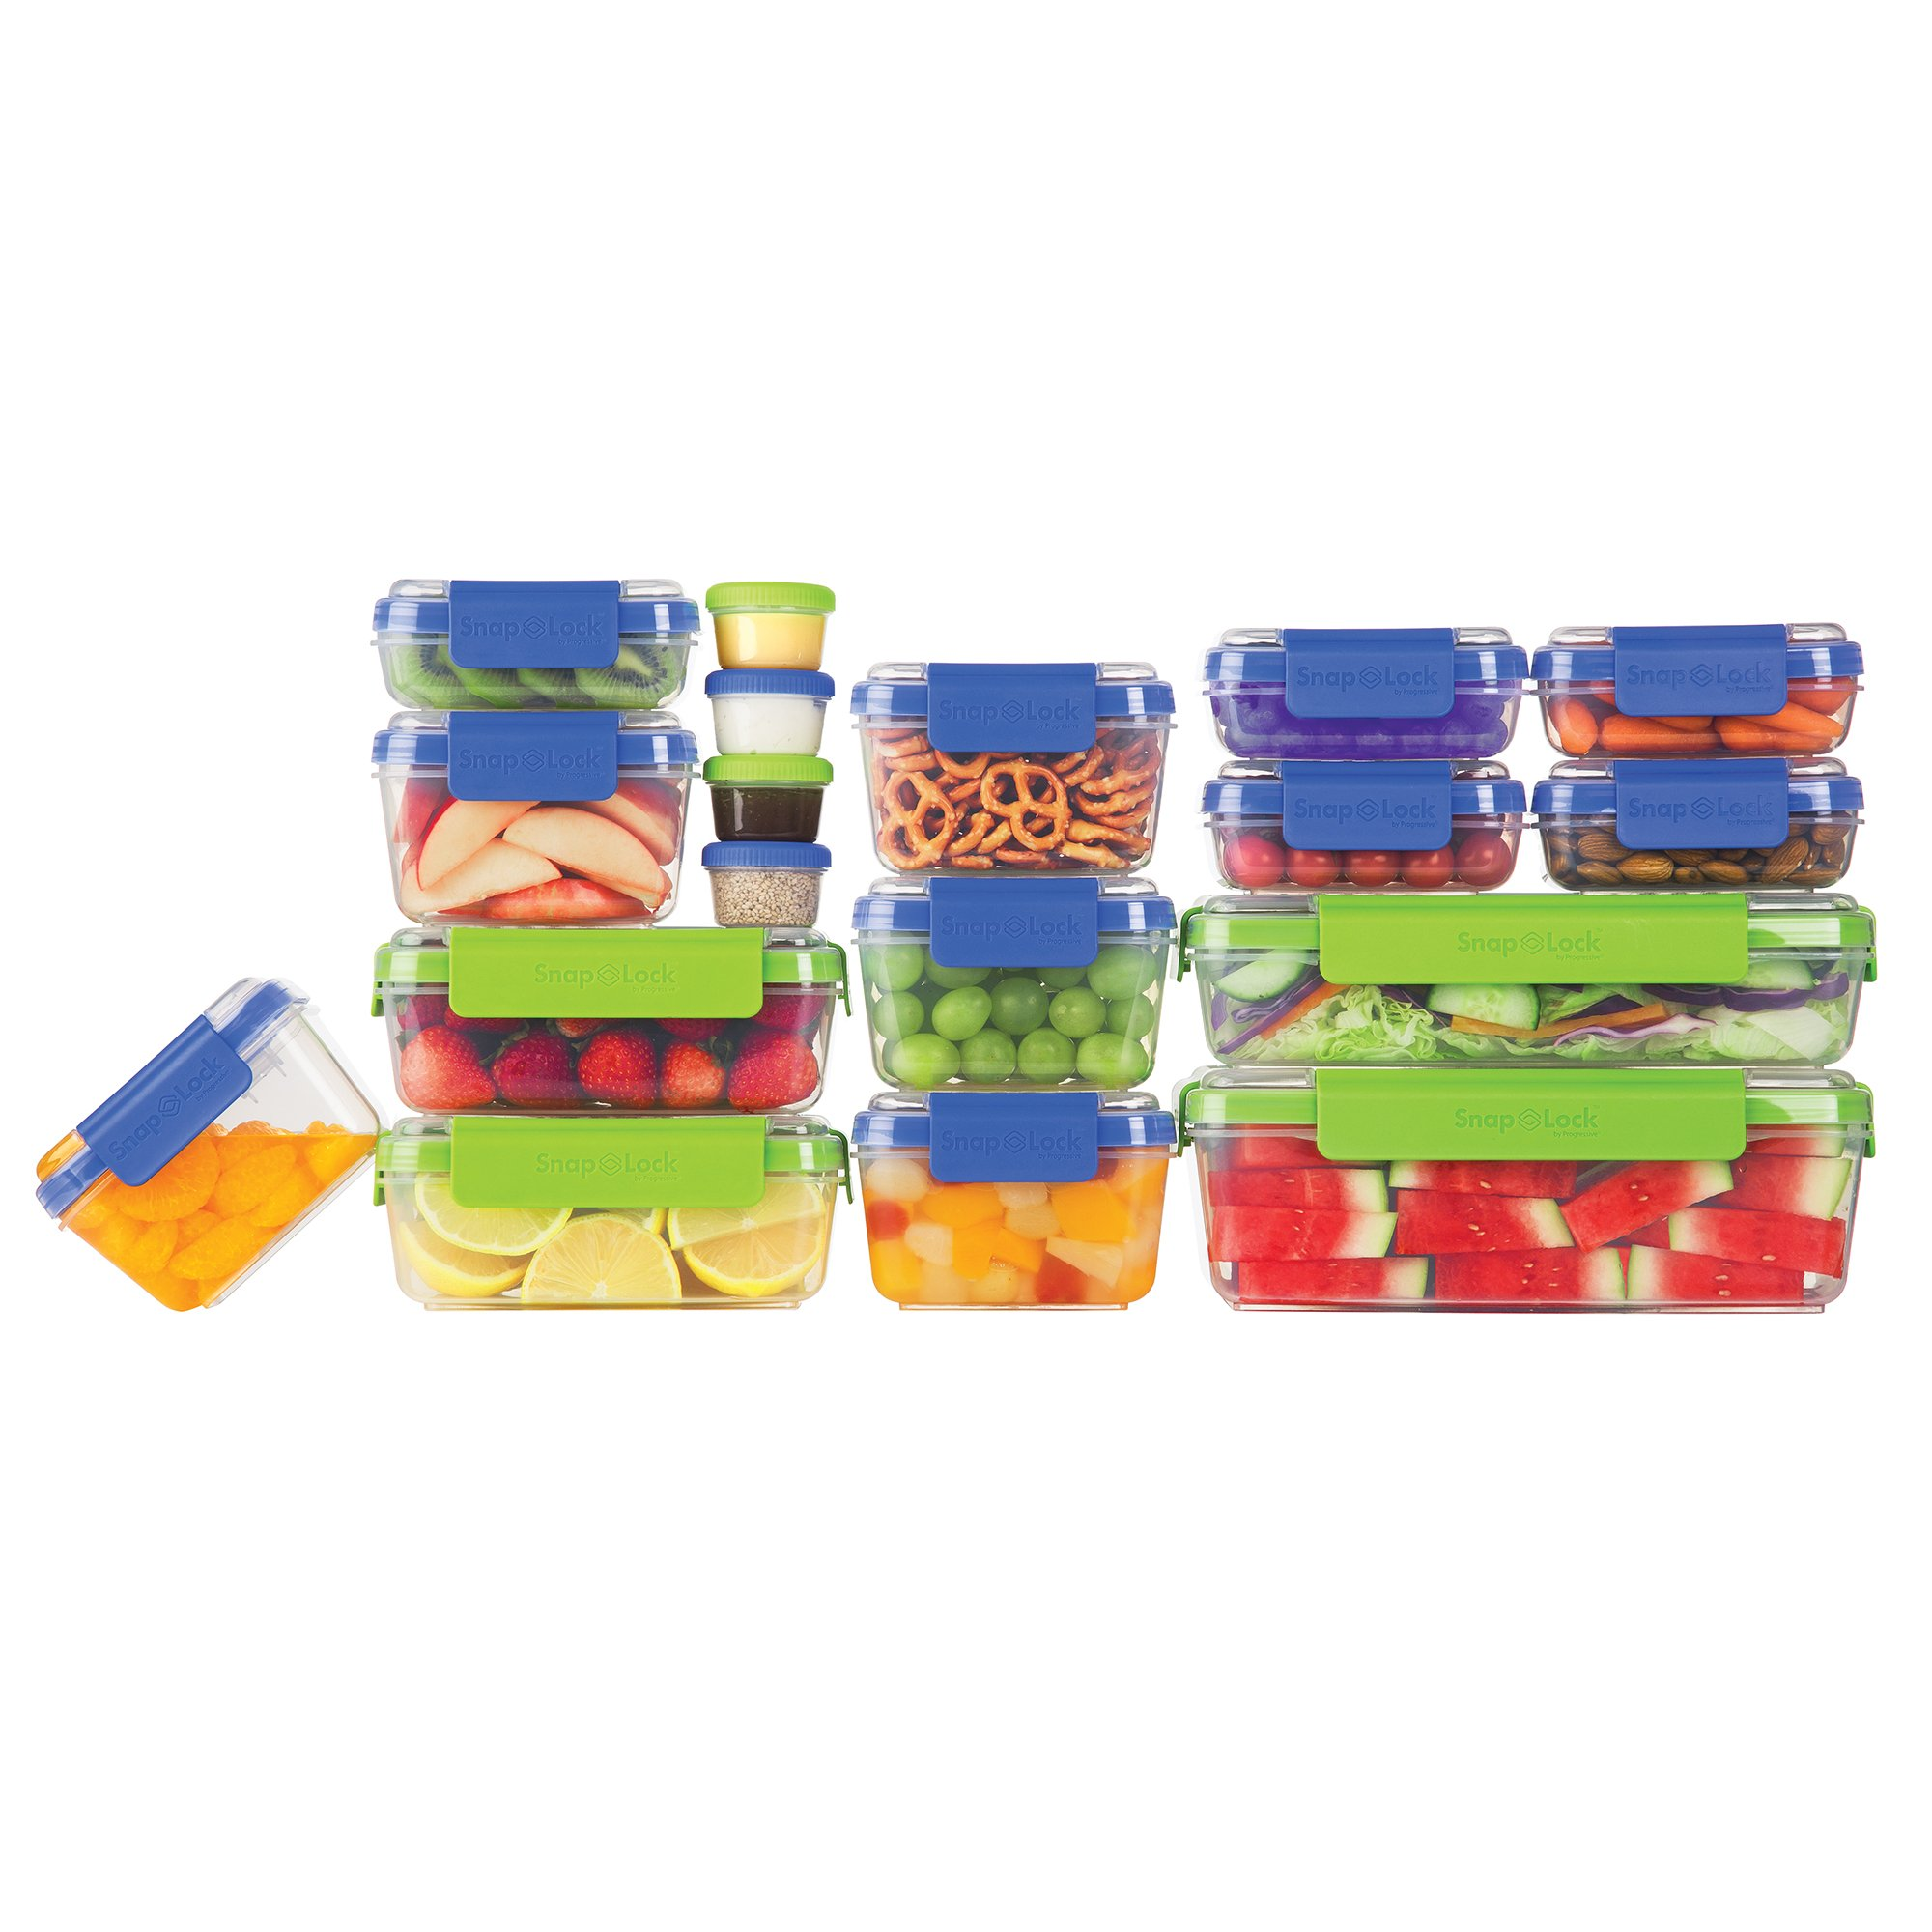 SnapLock by Progressive 36-Piece Container Set, Multicolored SNL-36SET Easy-To-Open, Leak-Proof Seal, Stackable, BPA FREE, All with lids